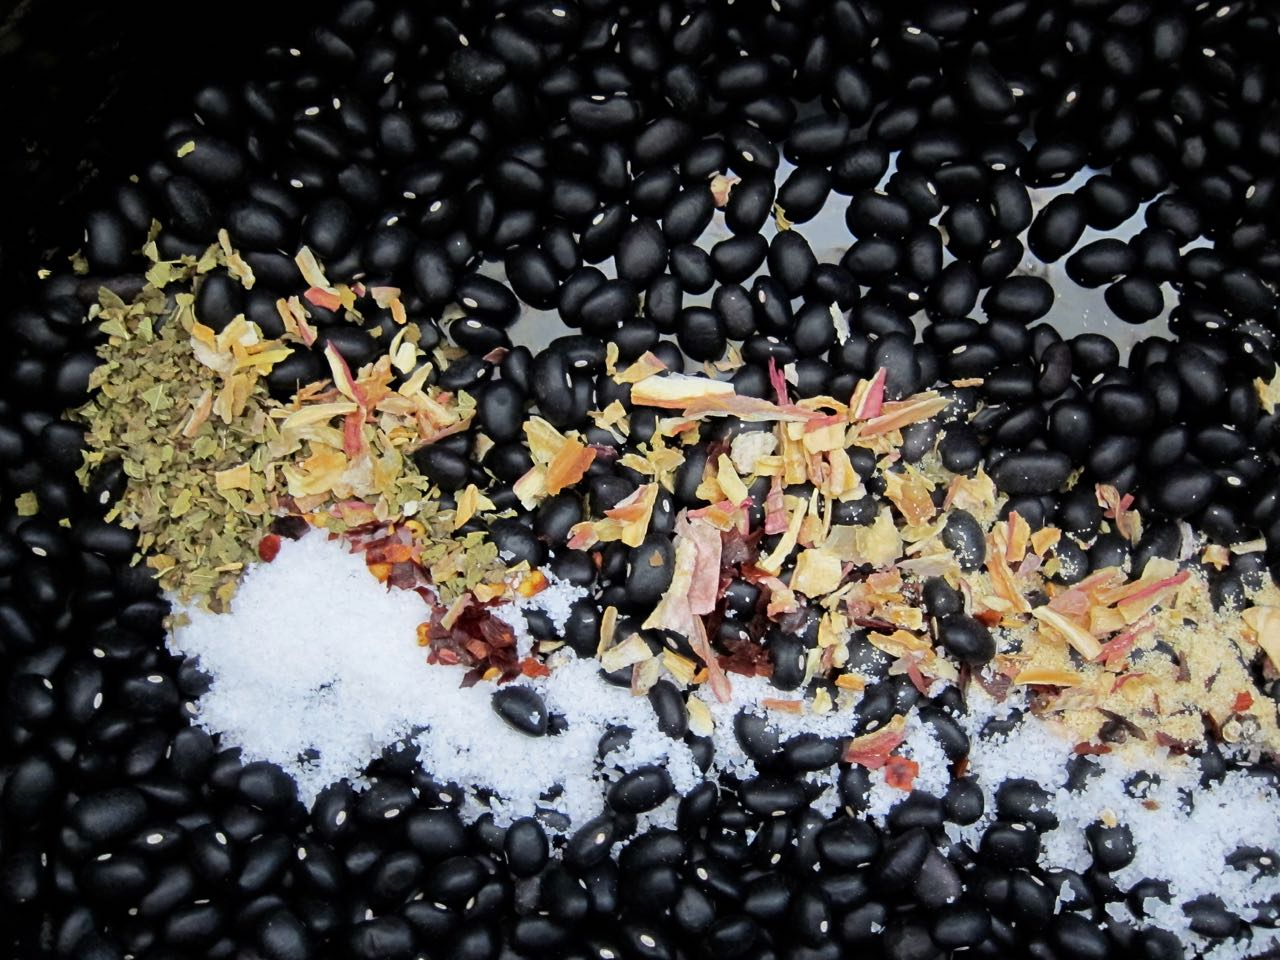 black beans and spices